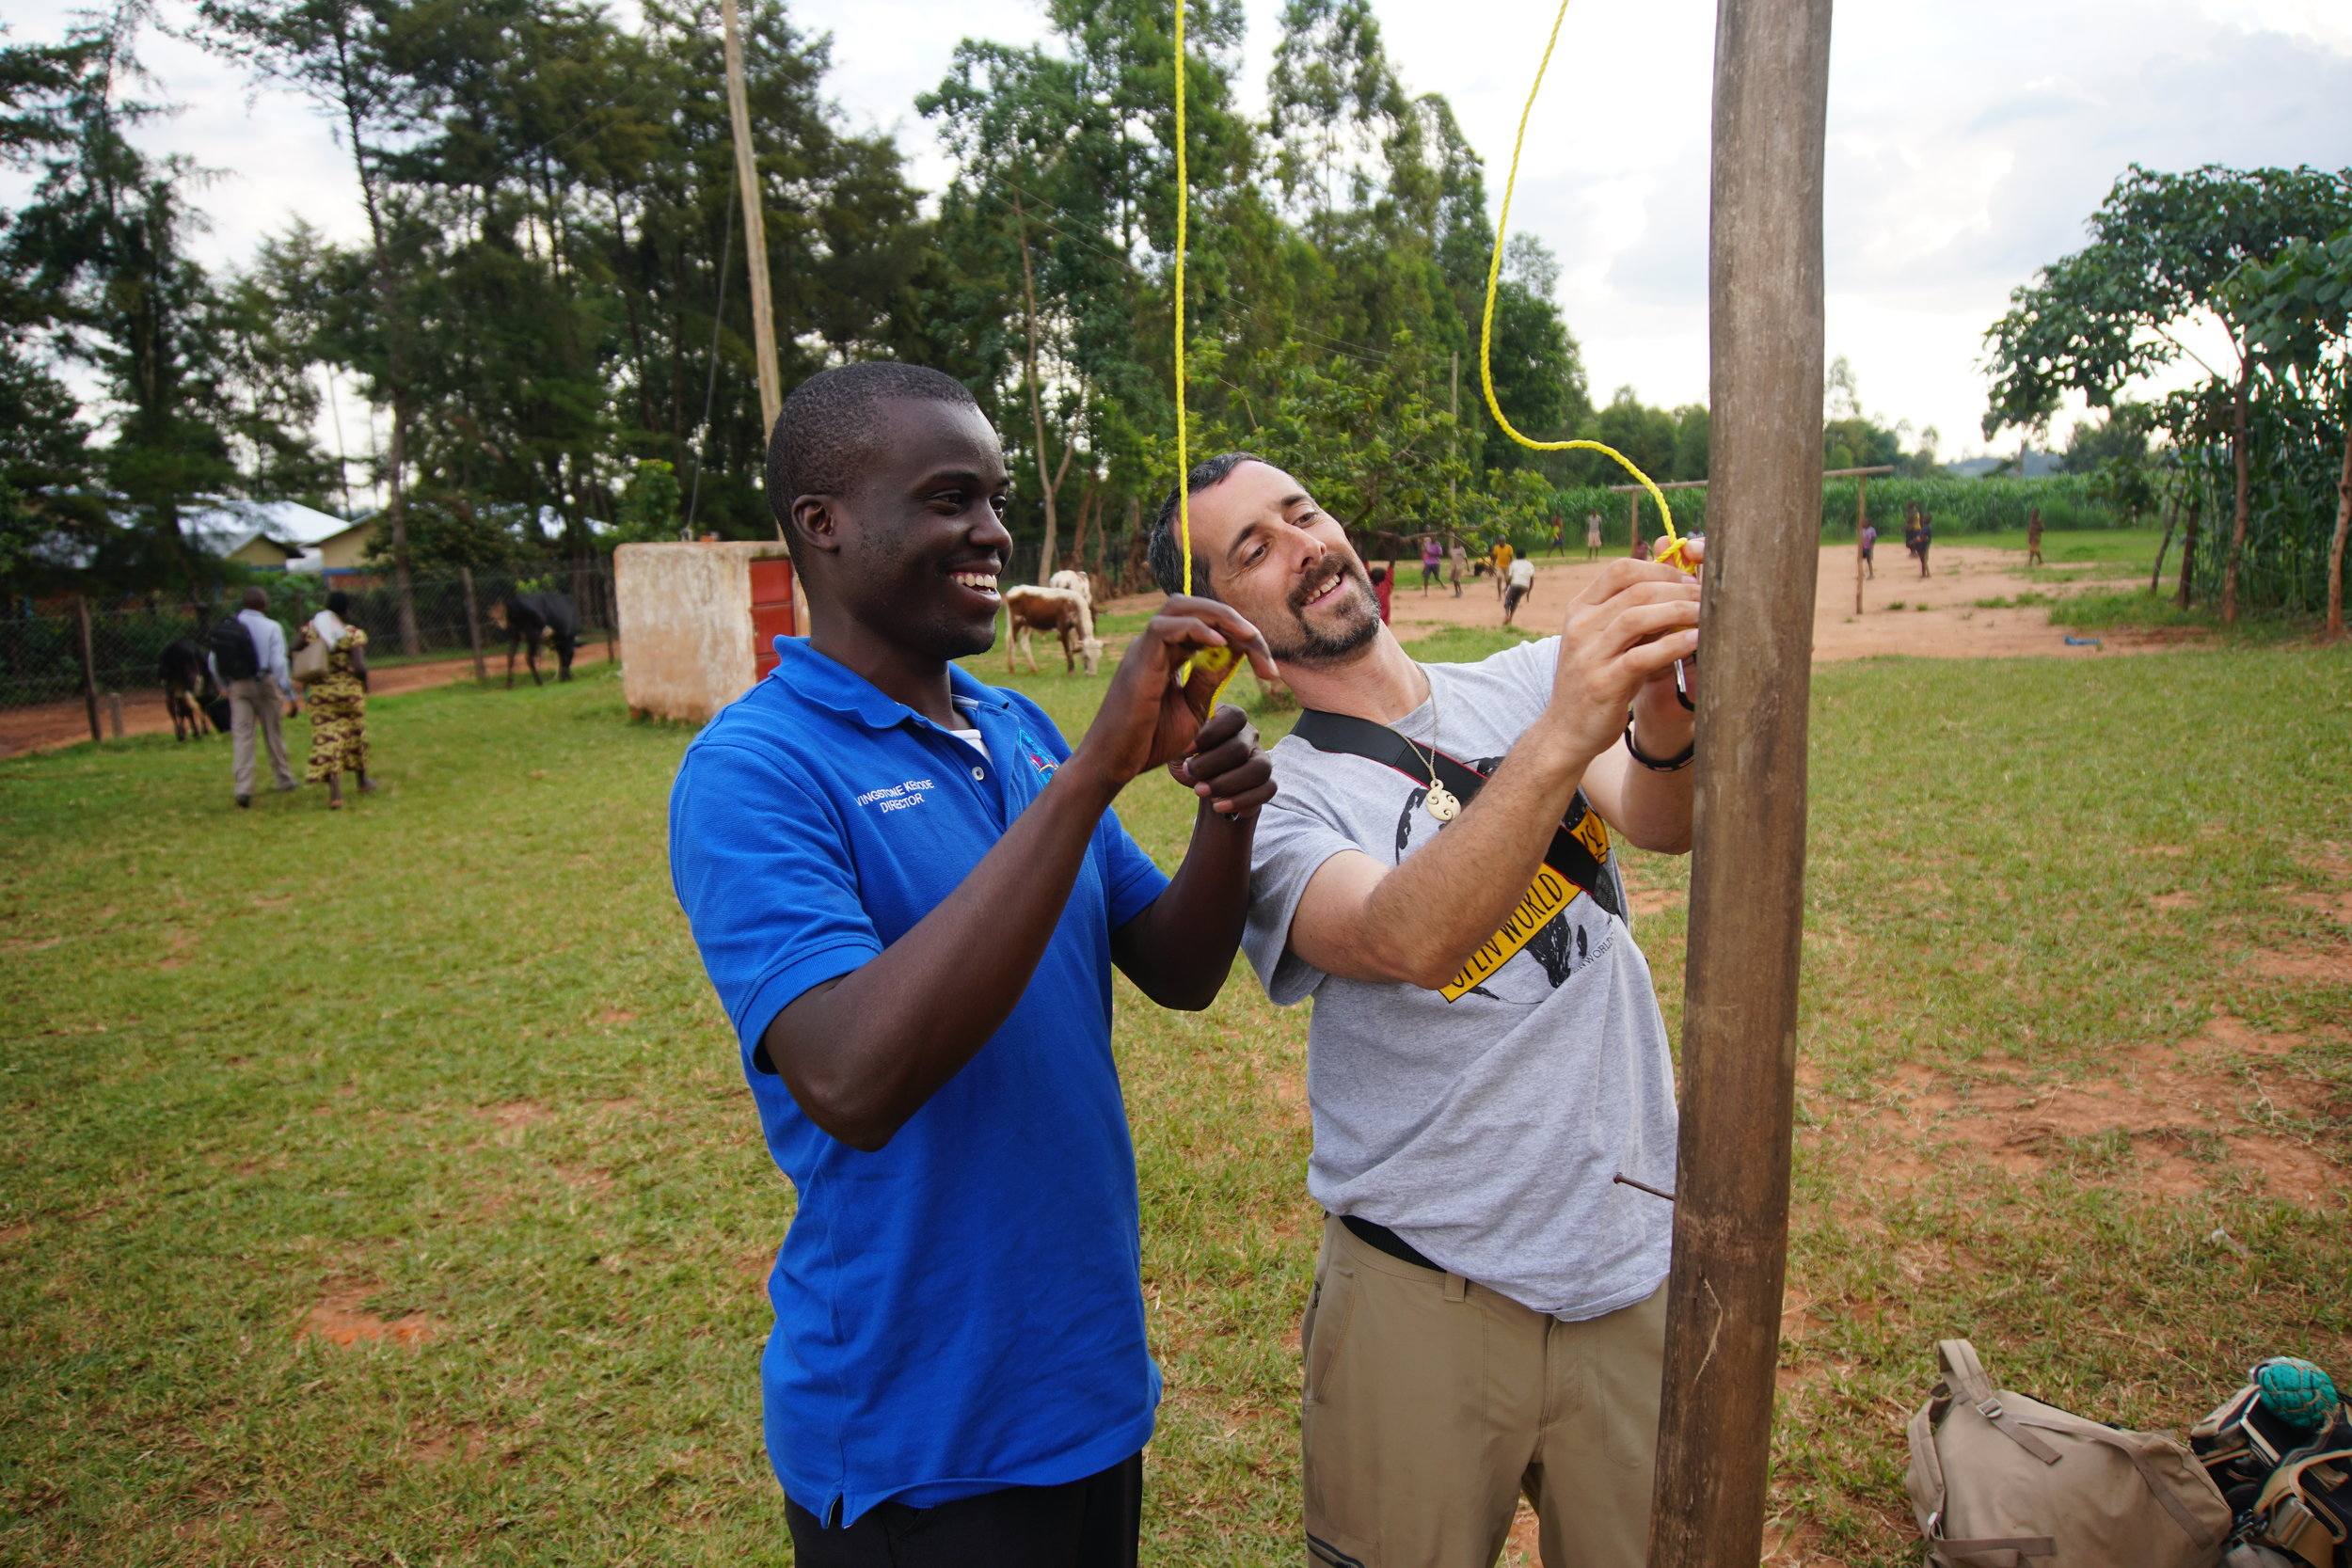 At the beginning of every day, the Kenyan flag would be raised, and at the end of the day, the Kenyan flag would be lowered. John brought with him a carabiner that they rigged to the flag pole to make it easier for HIP's students to be able to raise and lower it every day.